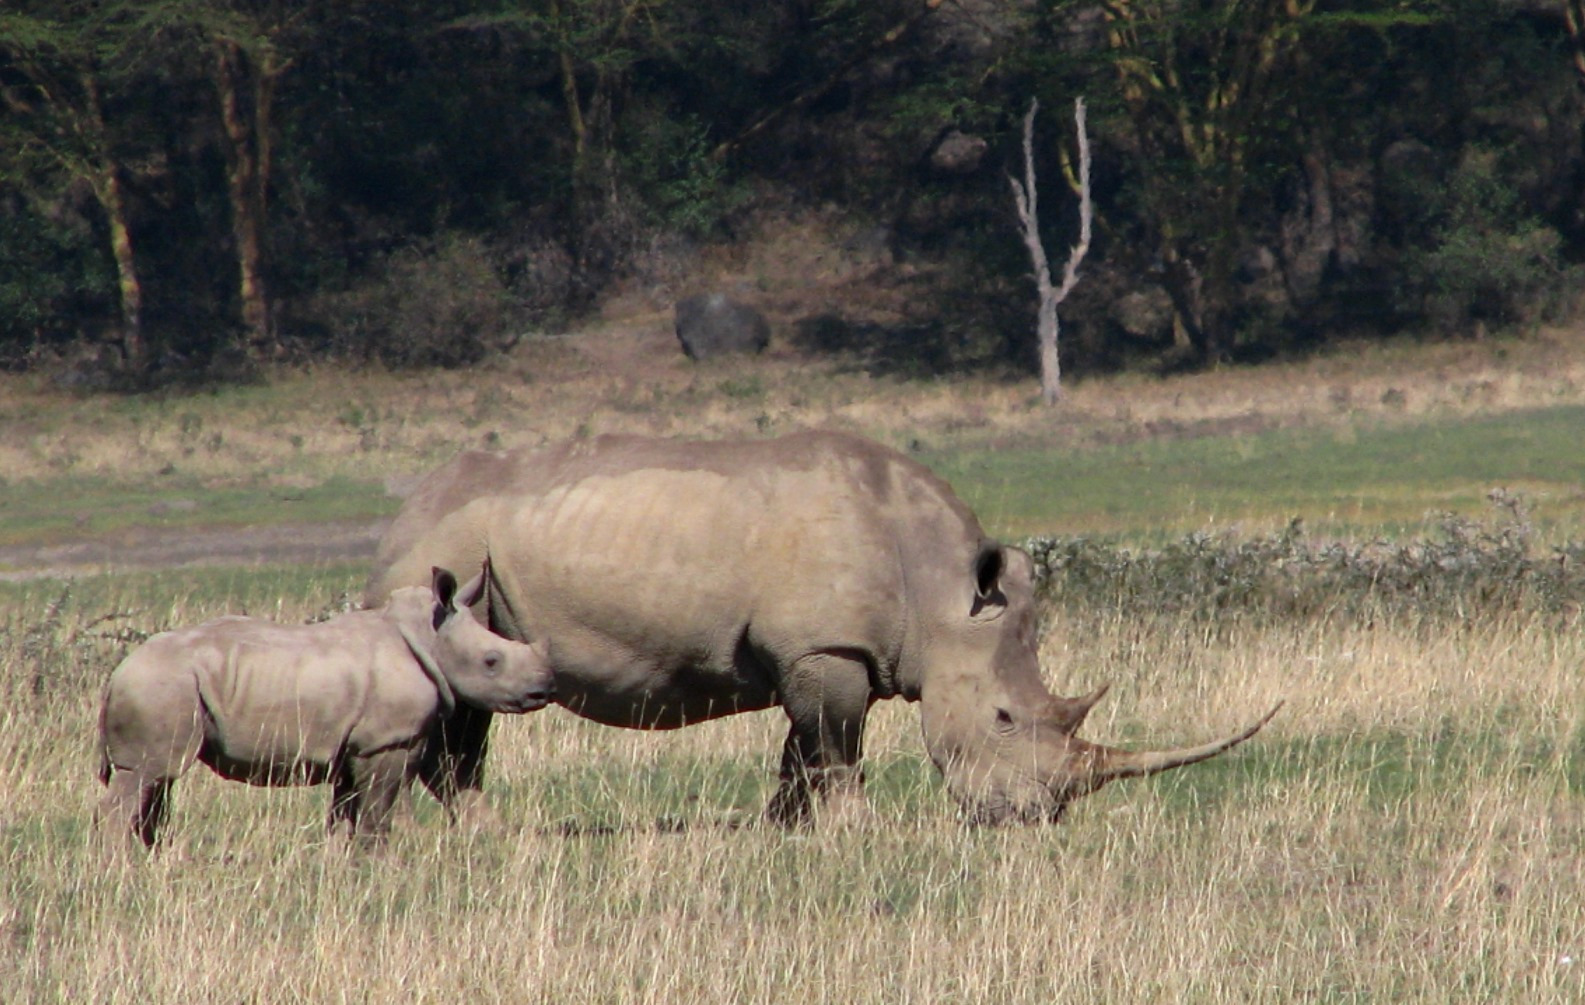 A grazing white rhino and calf in Kenya's Nakuru National Park benefit from protection from imaging technology and rangers on the ground.